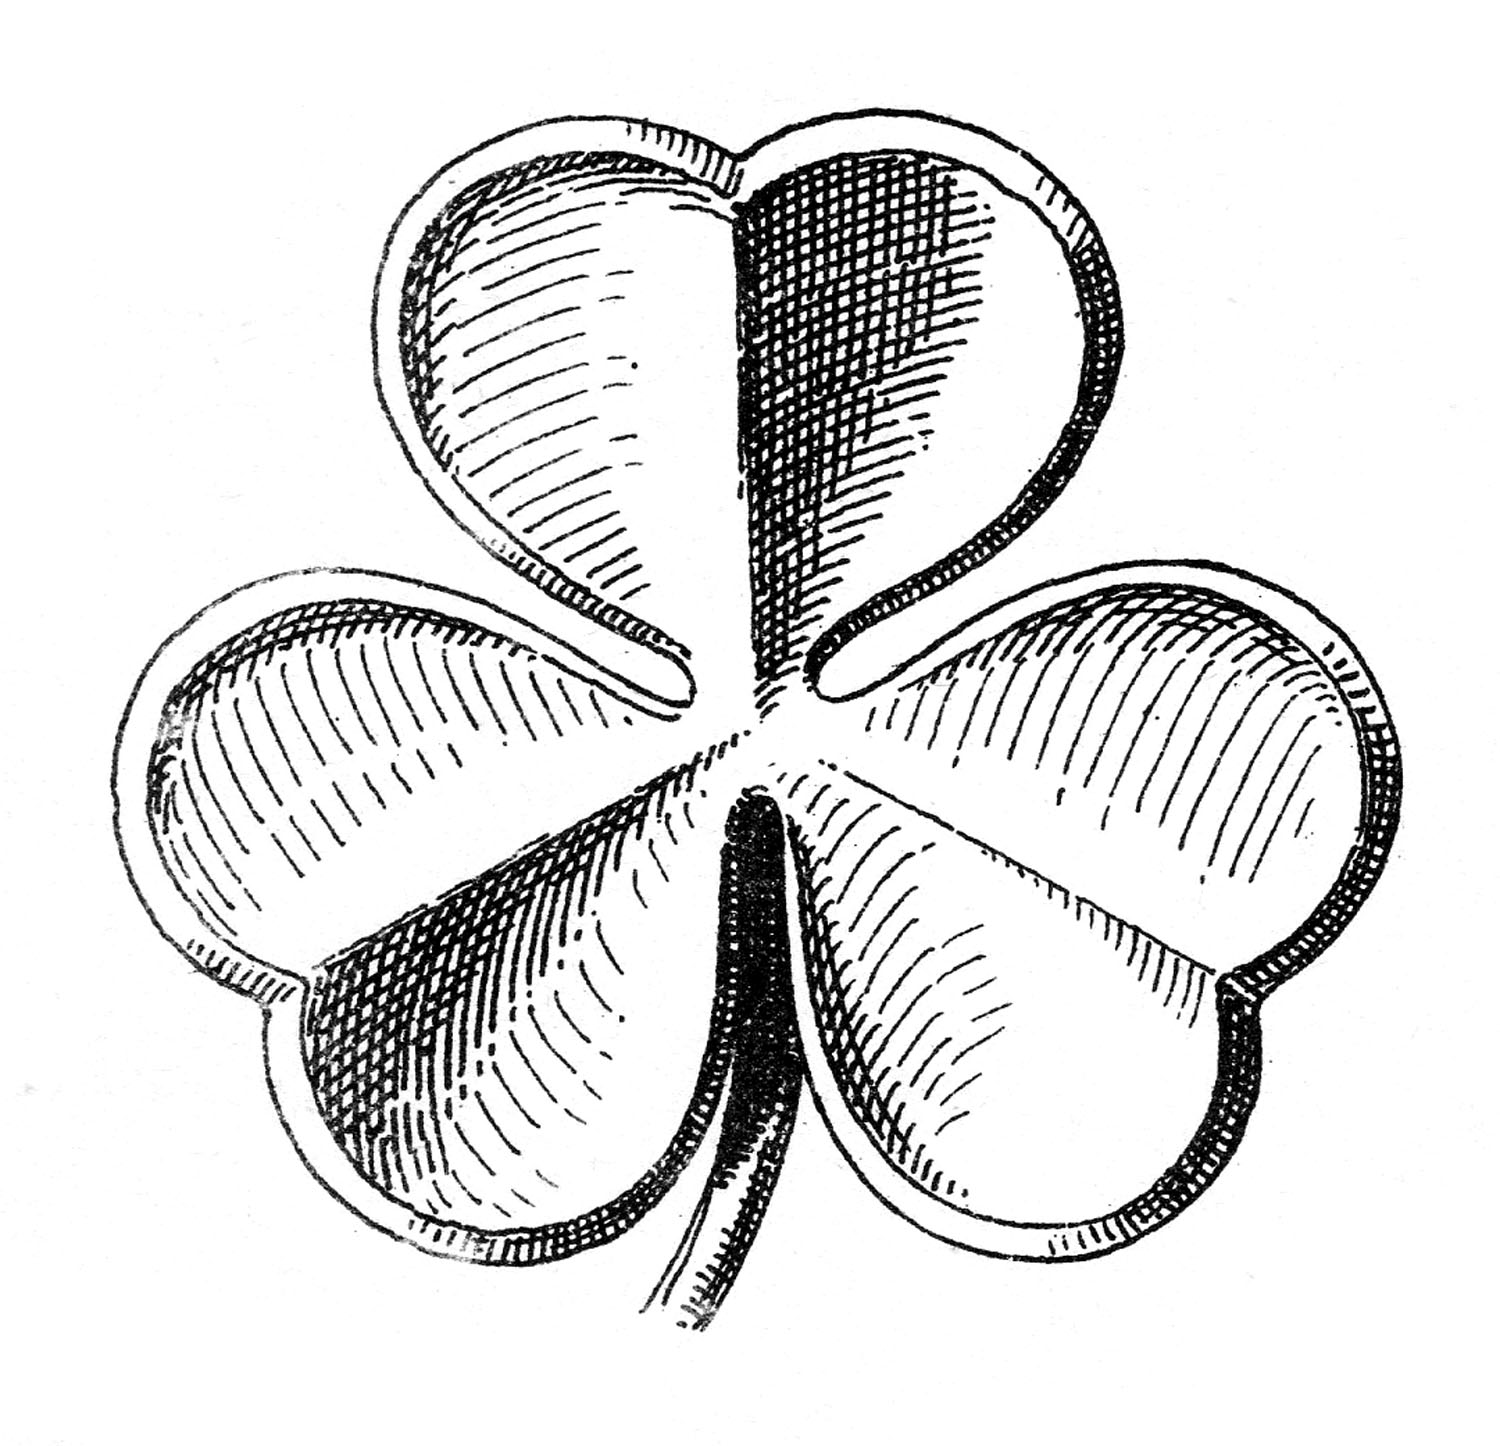 Public Domain Clip Art   Shamrocks   St  Patrick S Day   The Graphics